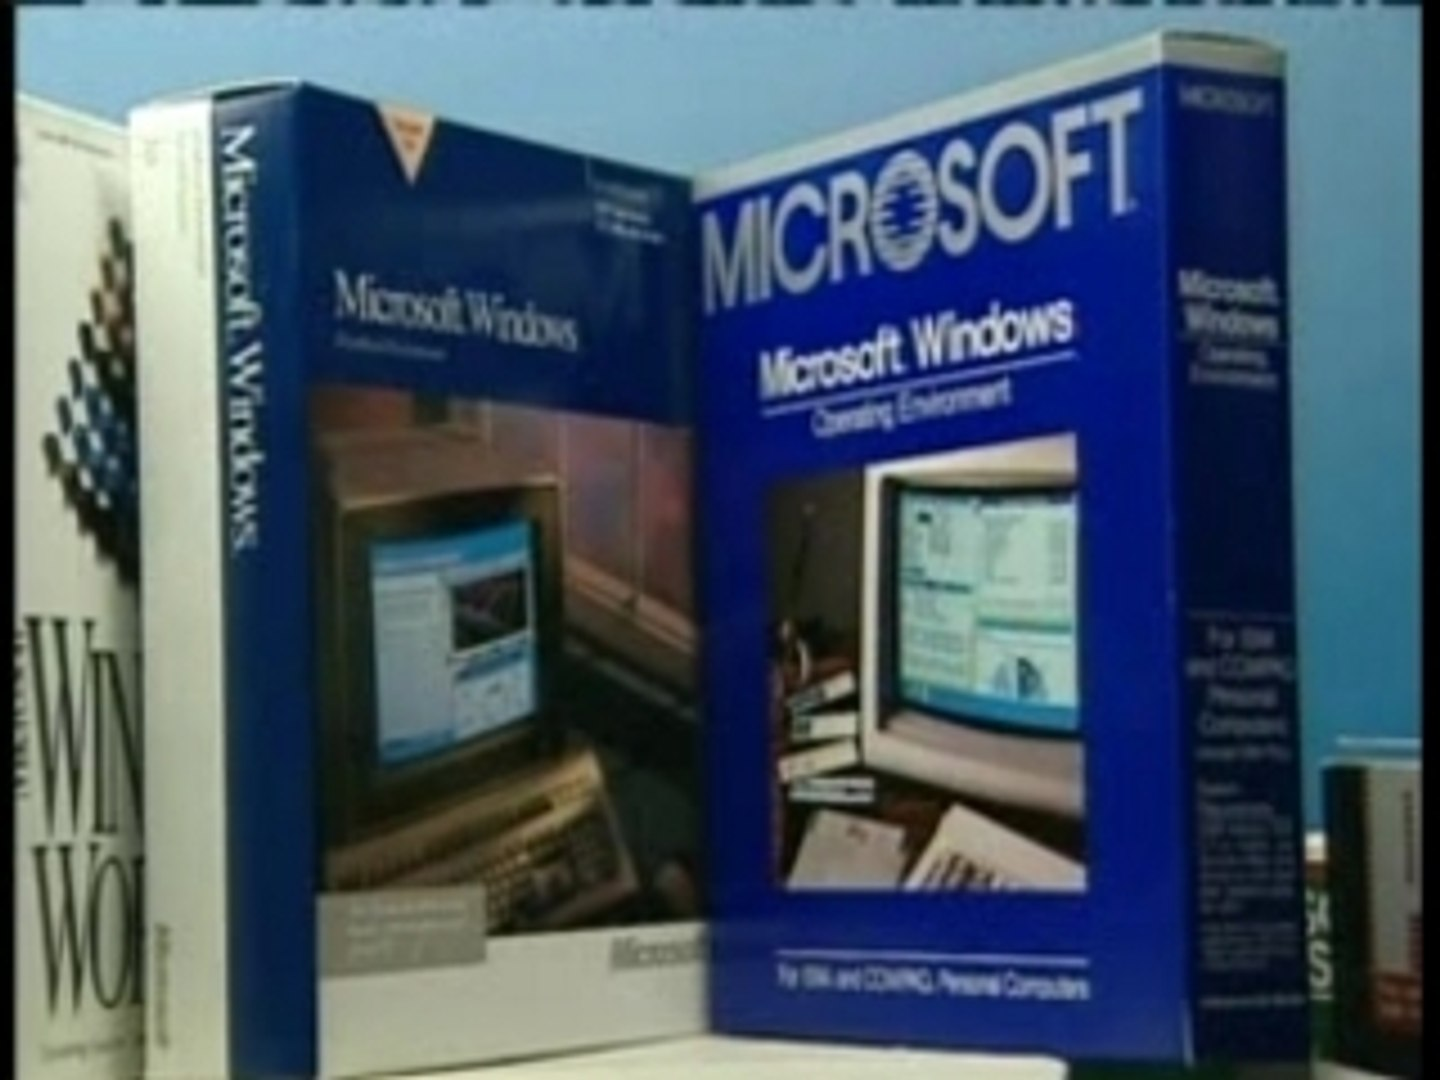 Old Microsoft products